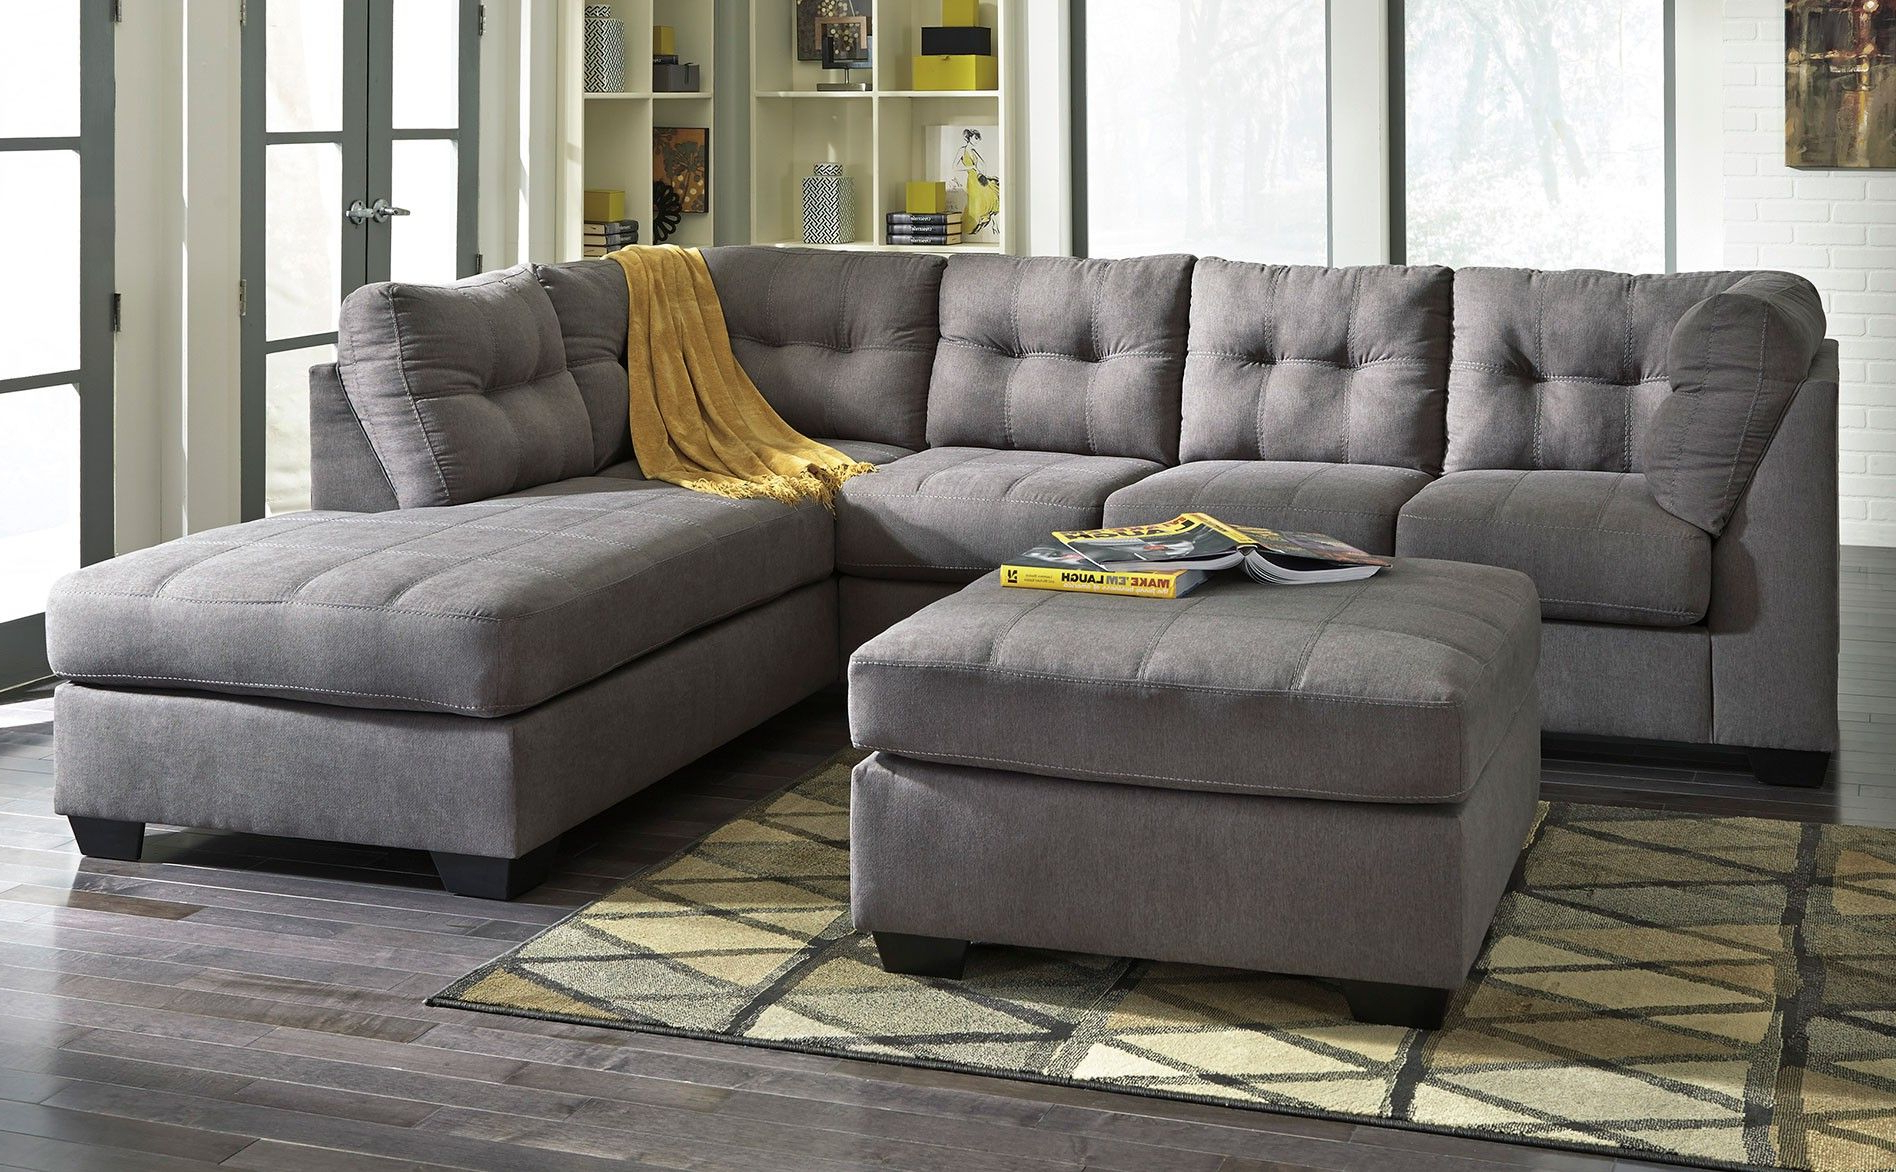 2pc Burland Contemporary Sectional Sofas Charcoal With Well Known Ashley Maier Sectional With Right Arm Facing Chaise (View 9 of 20)